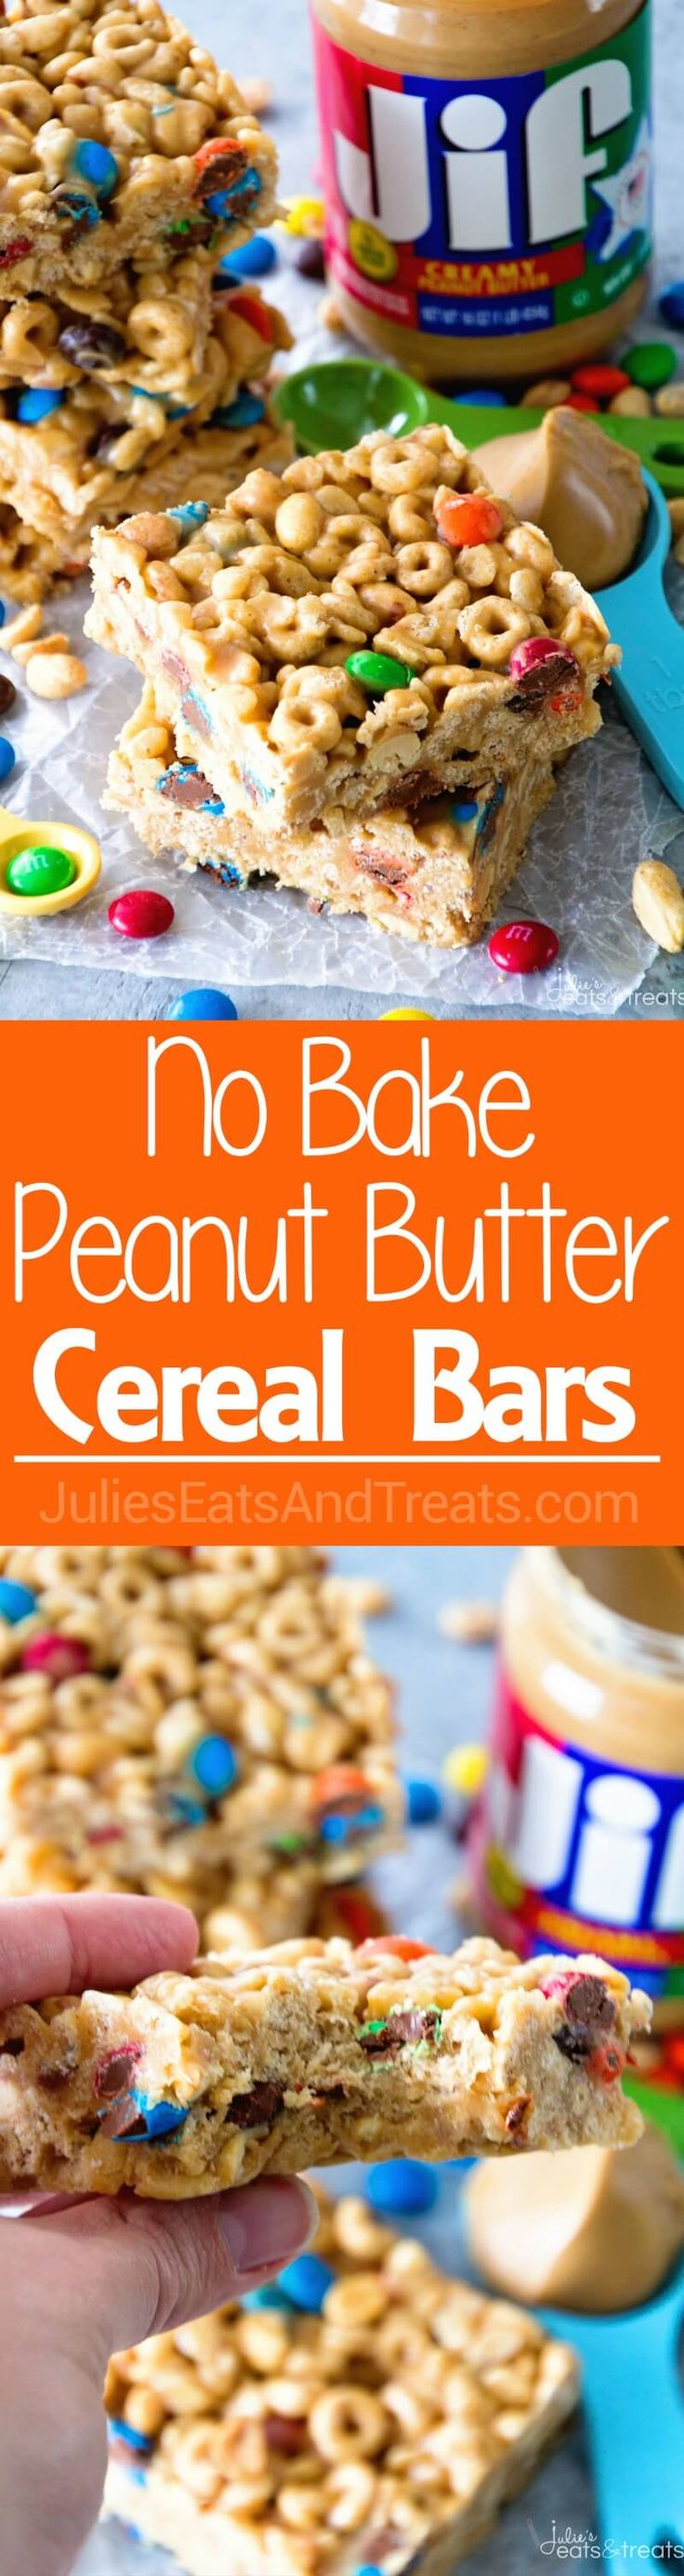 No Bake Peanut Butter Cereal Bars ~ Easy, No Bake Bars with Cheerios, Rice Krispies, M&M's, Peanuts that are Perfectly Ooey & Gooey! ~ http://www.julieseatsandtreats.com